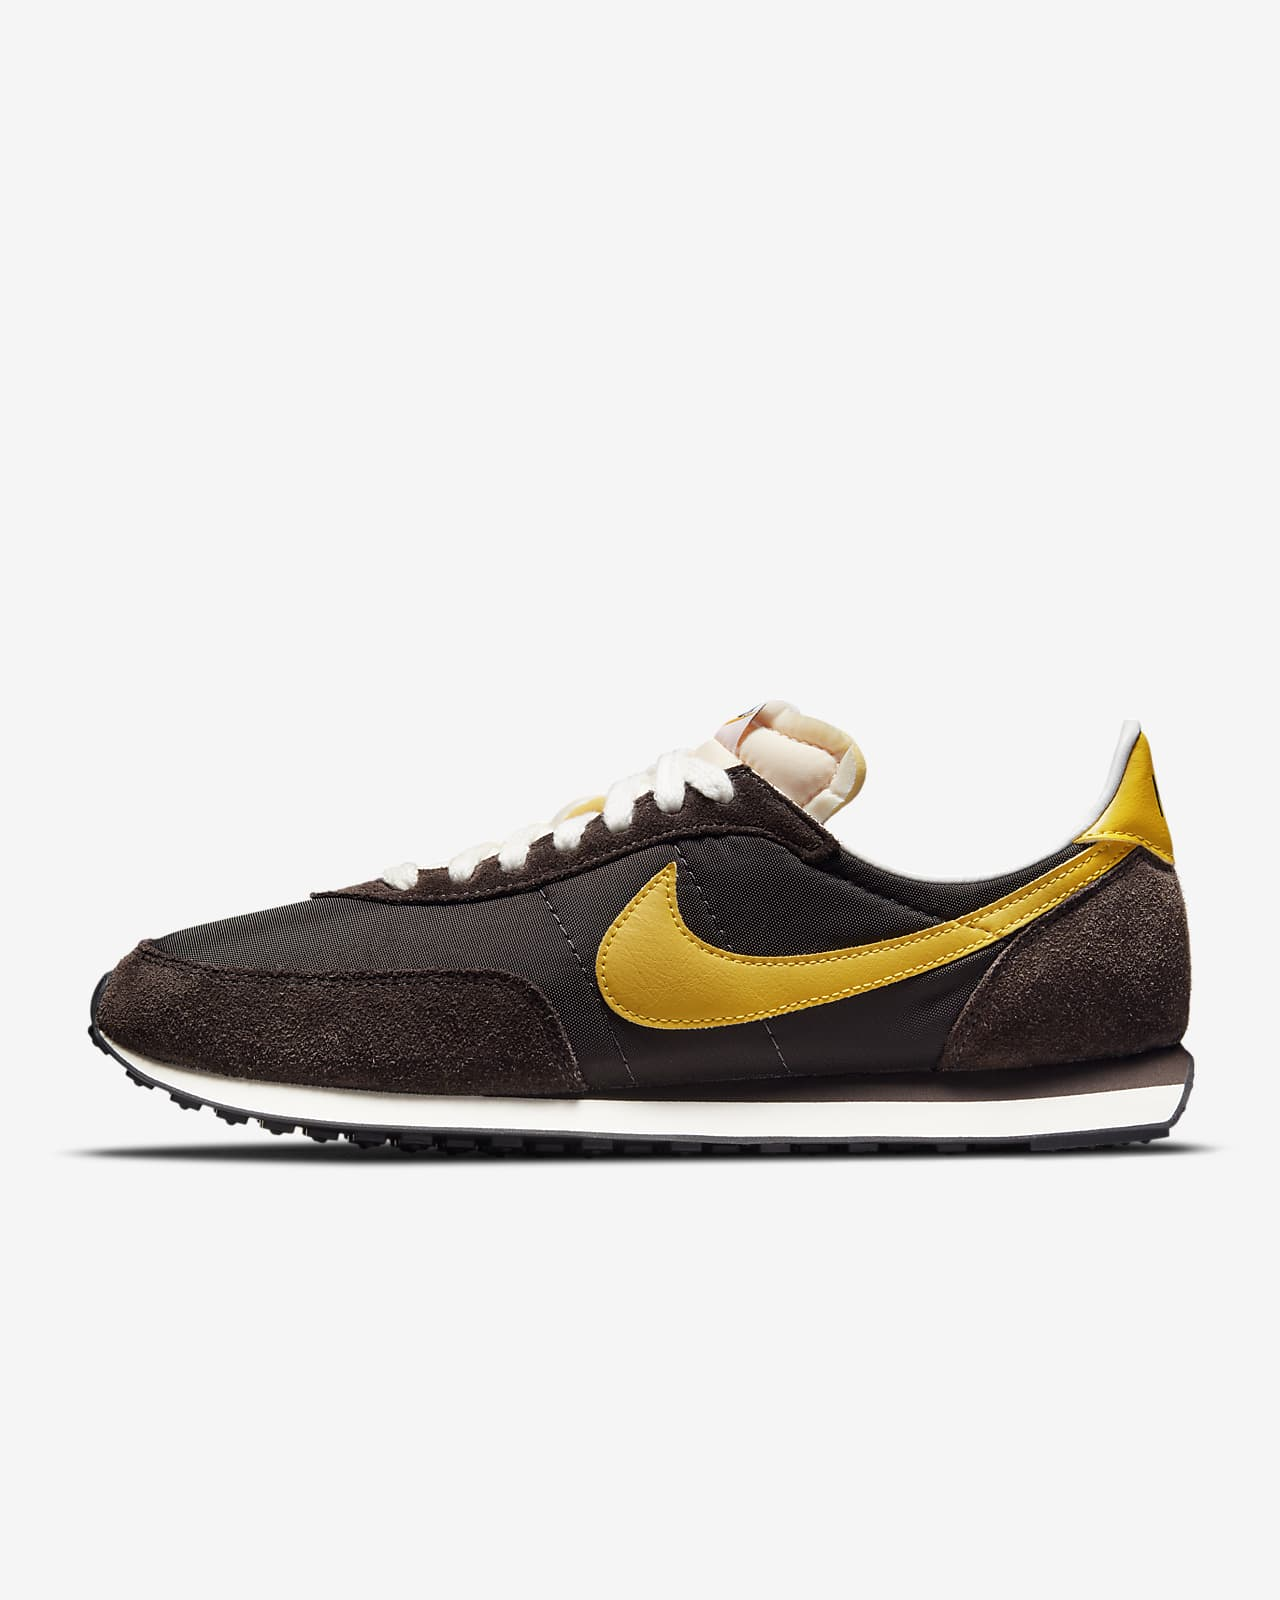 Nike Waffle Trainer 2 SP Men's Shoes